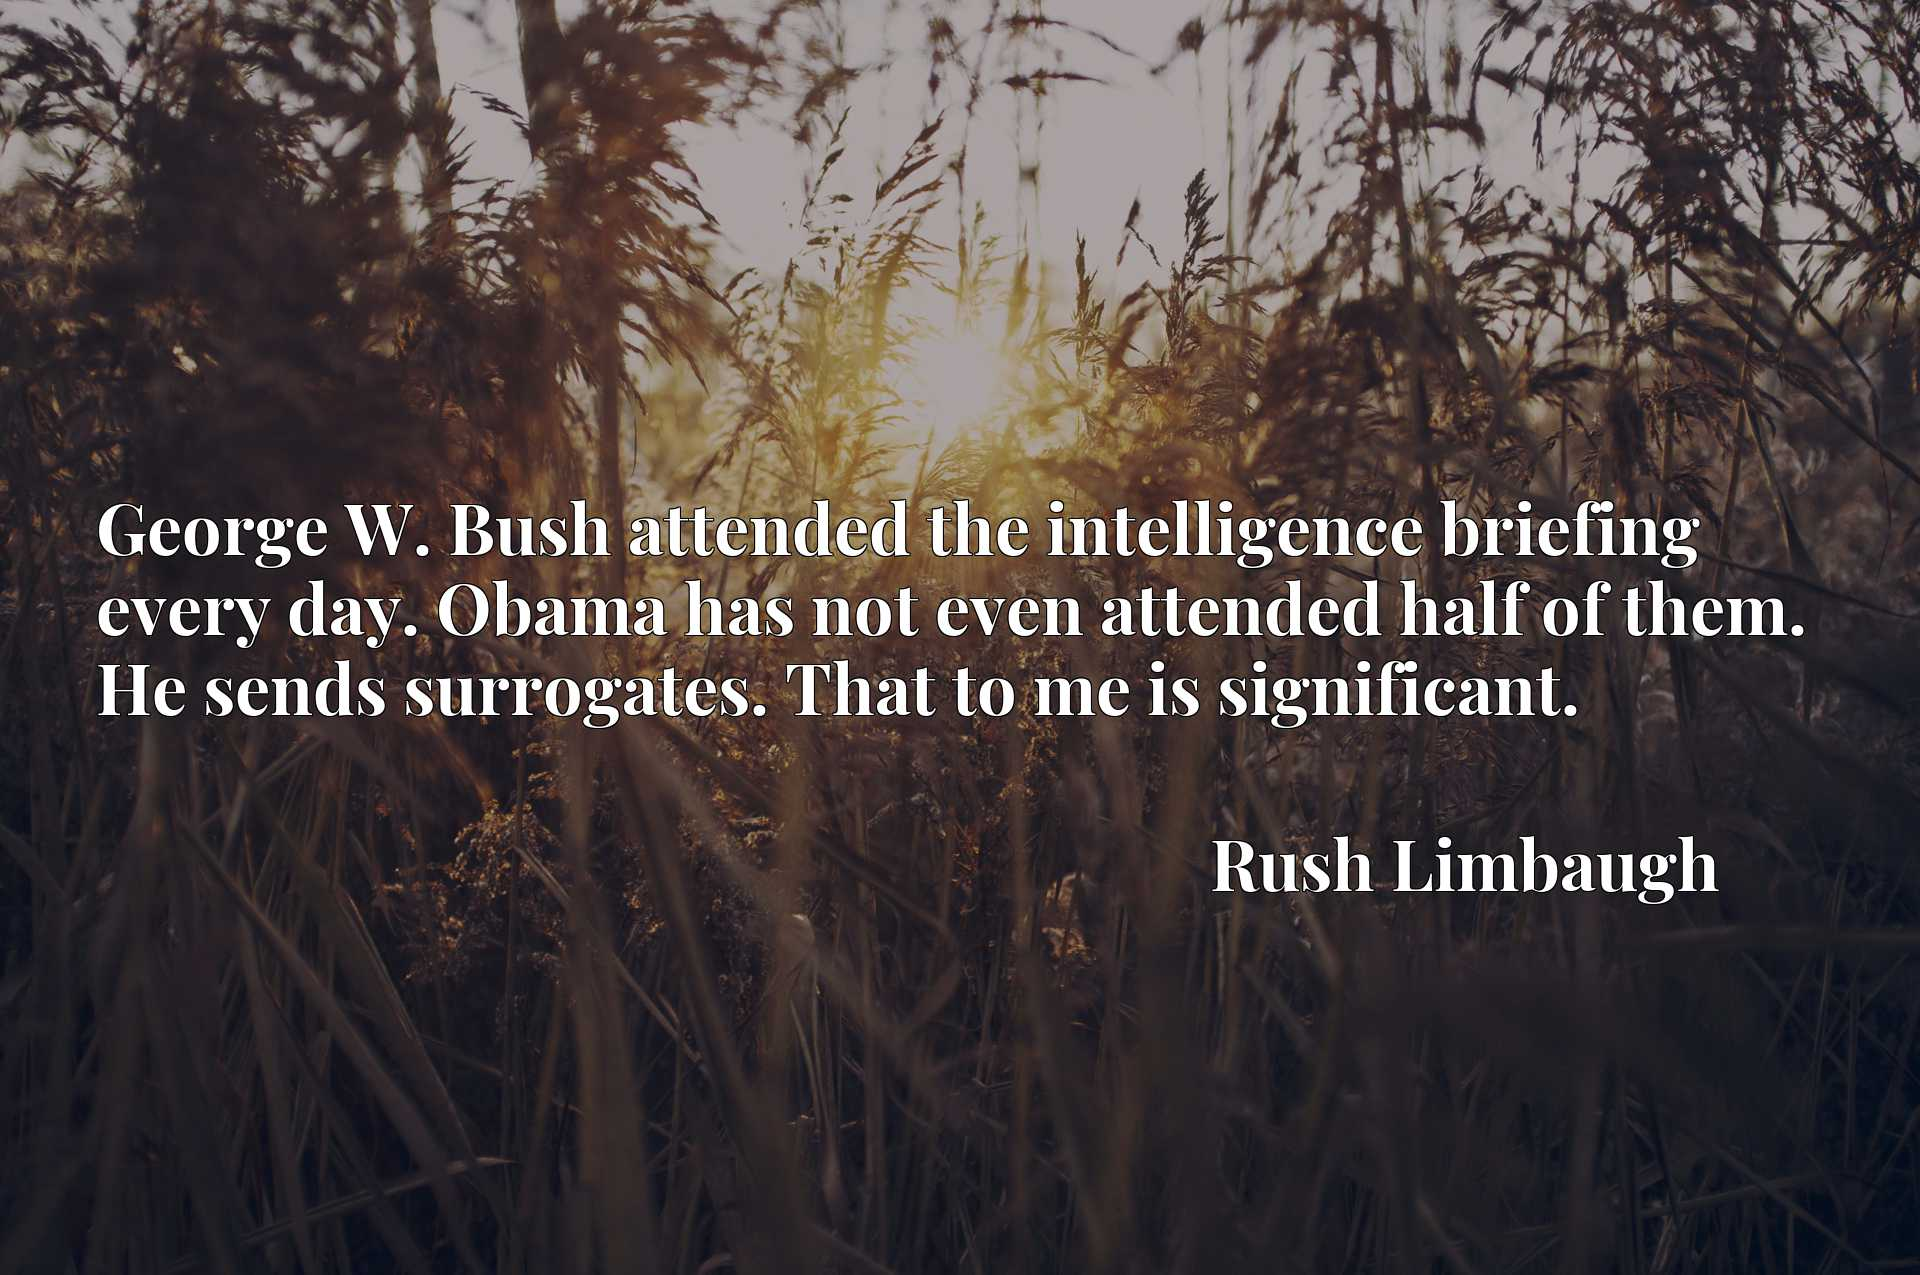 George W. Bush attended the intelligence briefing every day. Obama has not even attended half of them. He sends surrogates. That to me is significant.